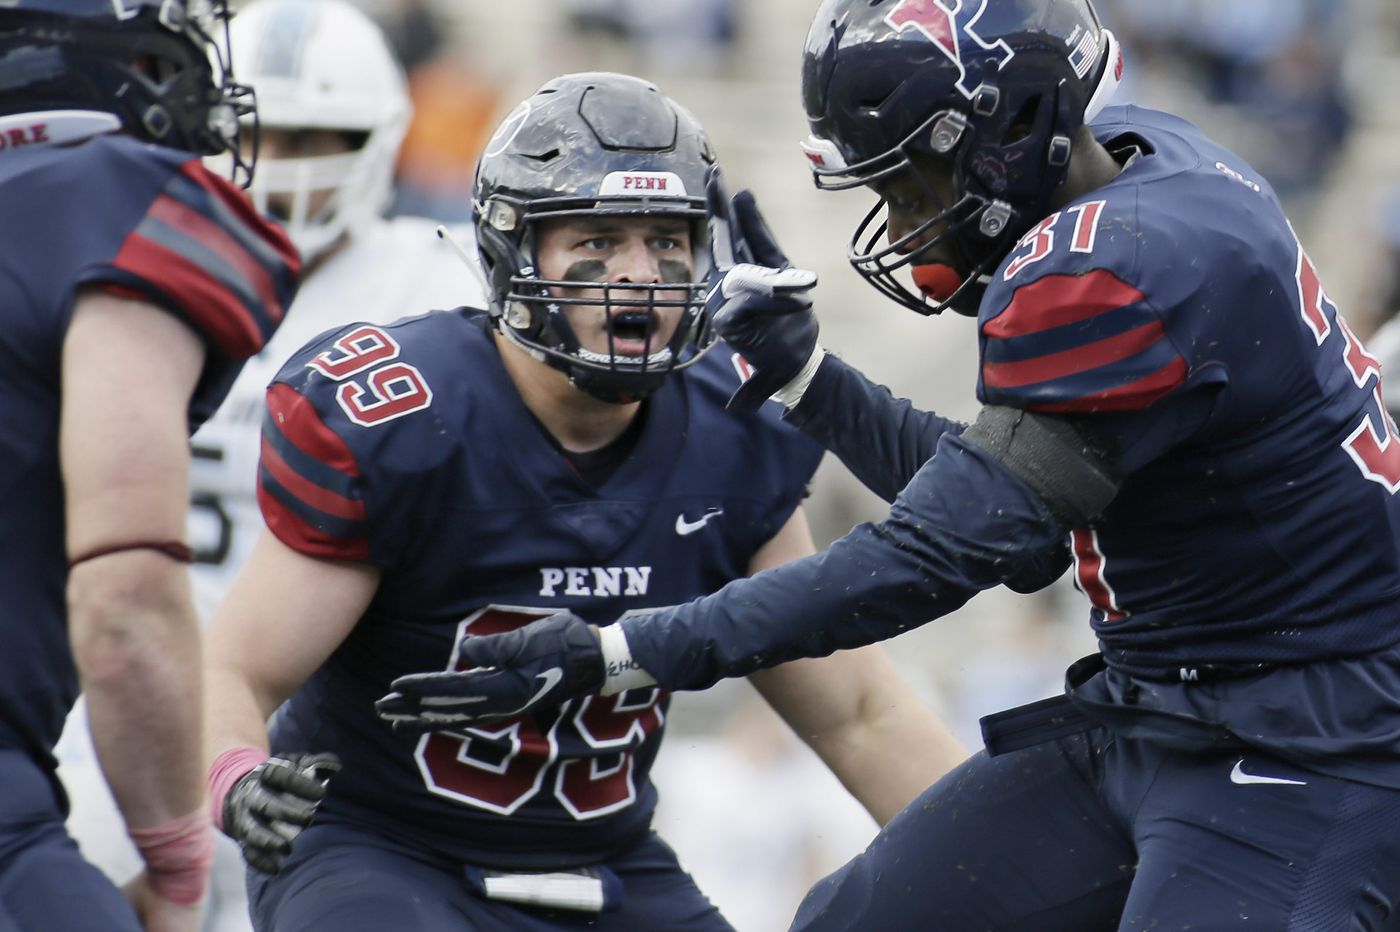 ESPN returns to Franklin Field on Friday as Penn takes on Yale